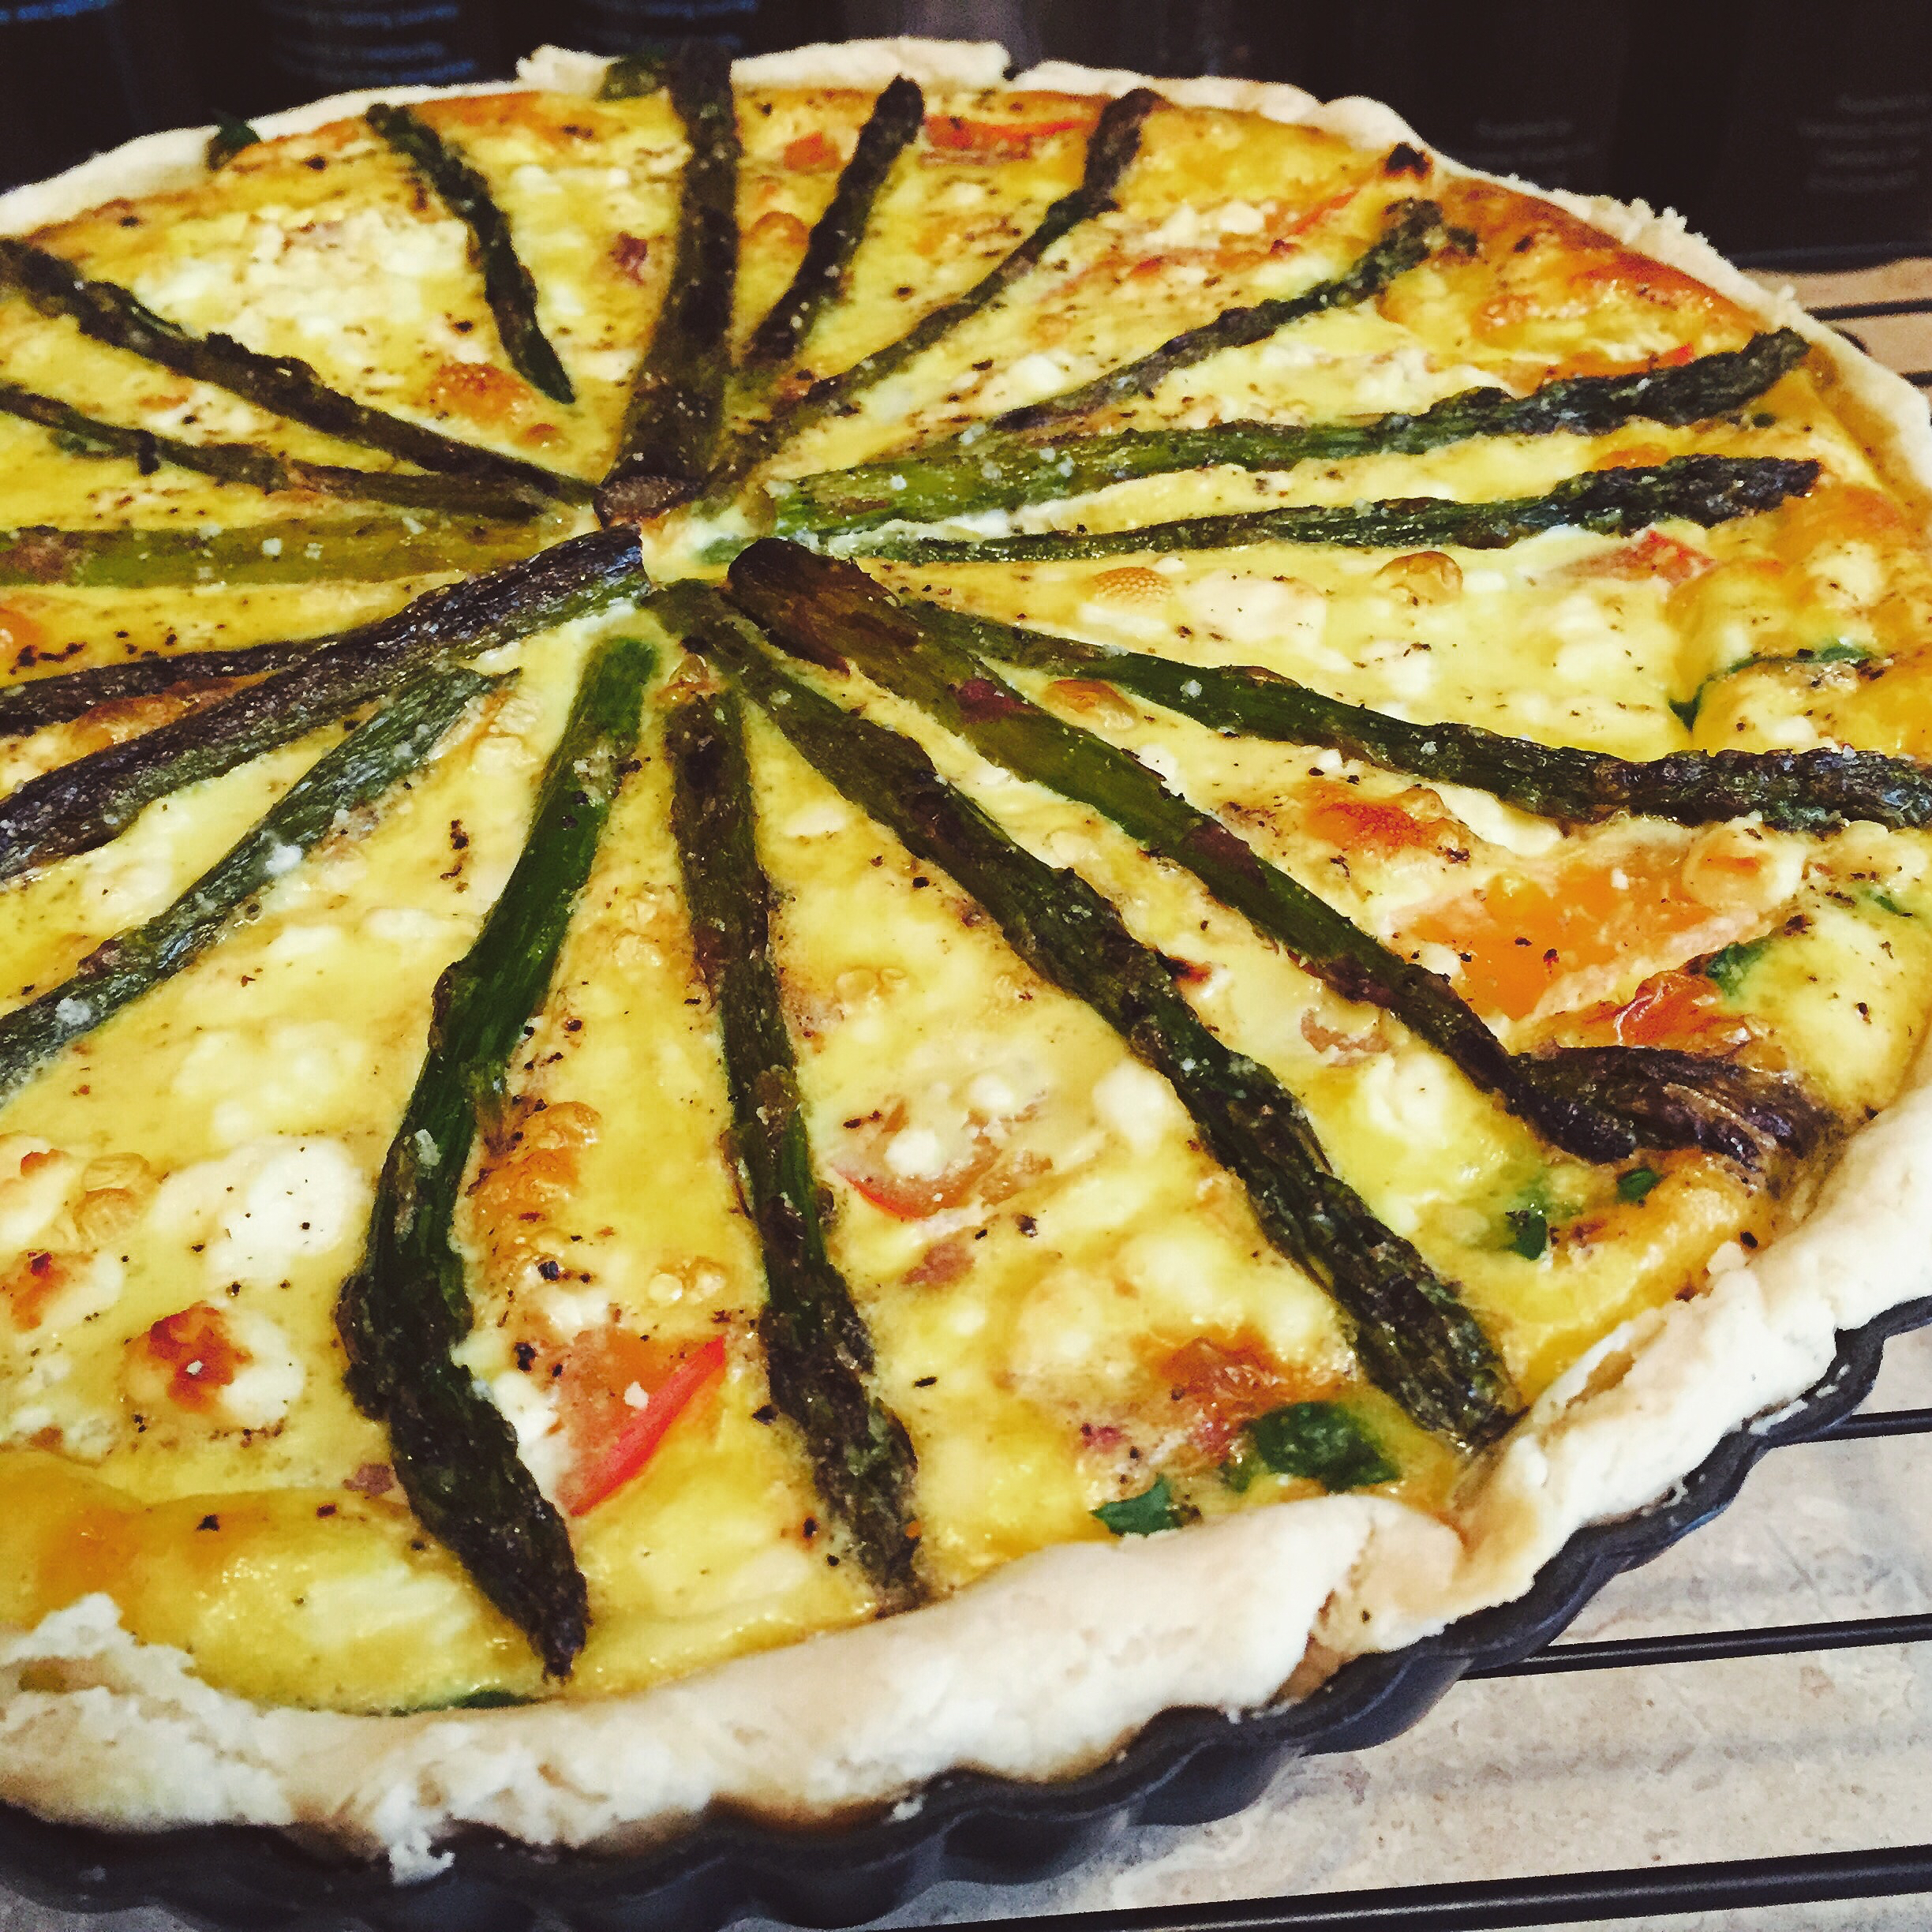 Asparagus, Bacon and Feta Quiche with Olive Oil Infused Crust